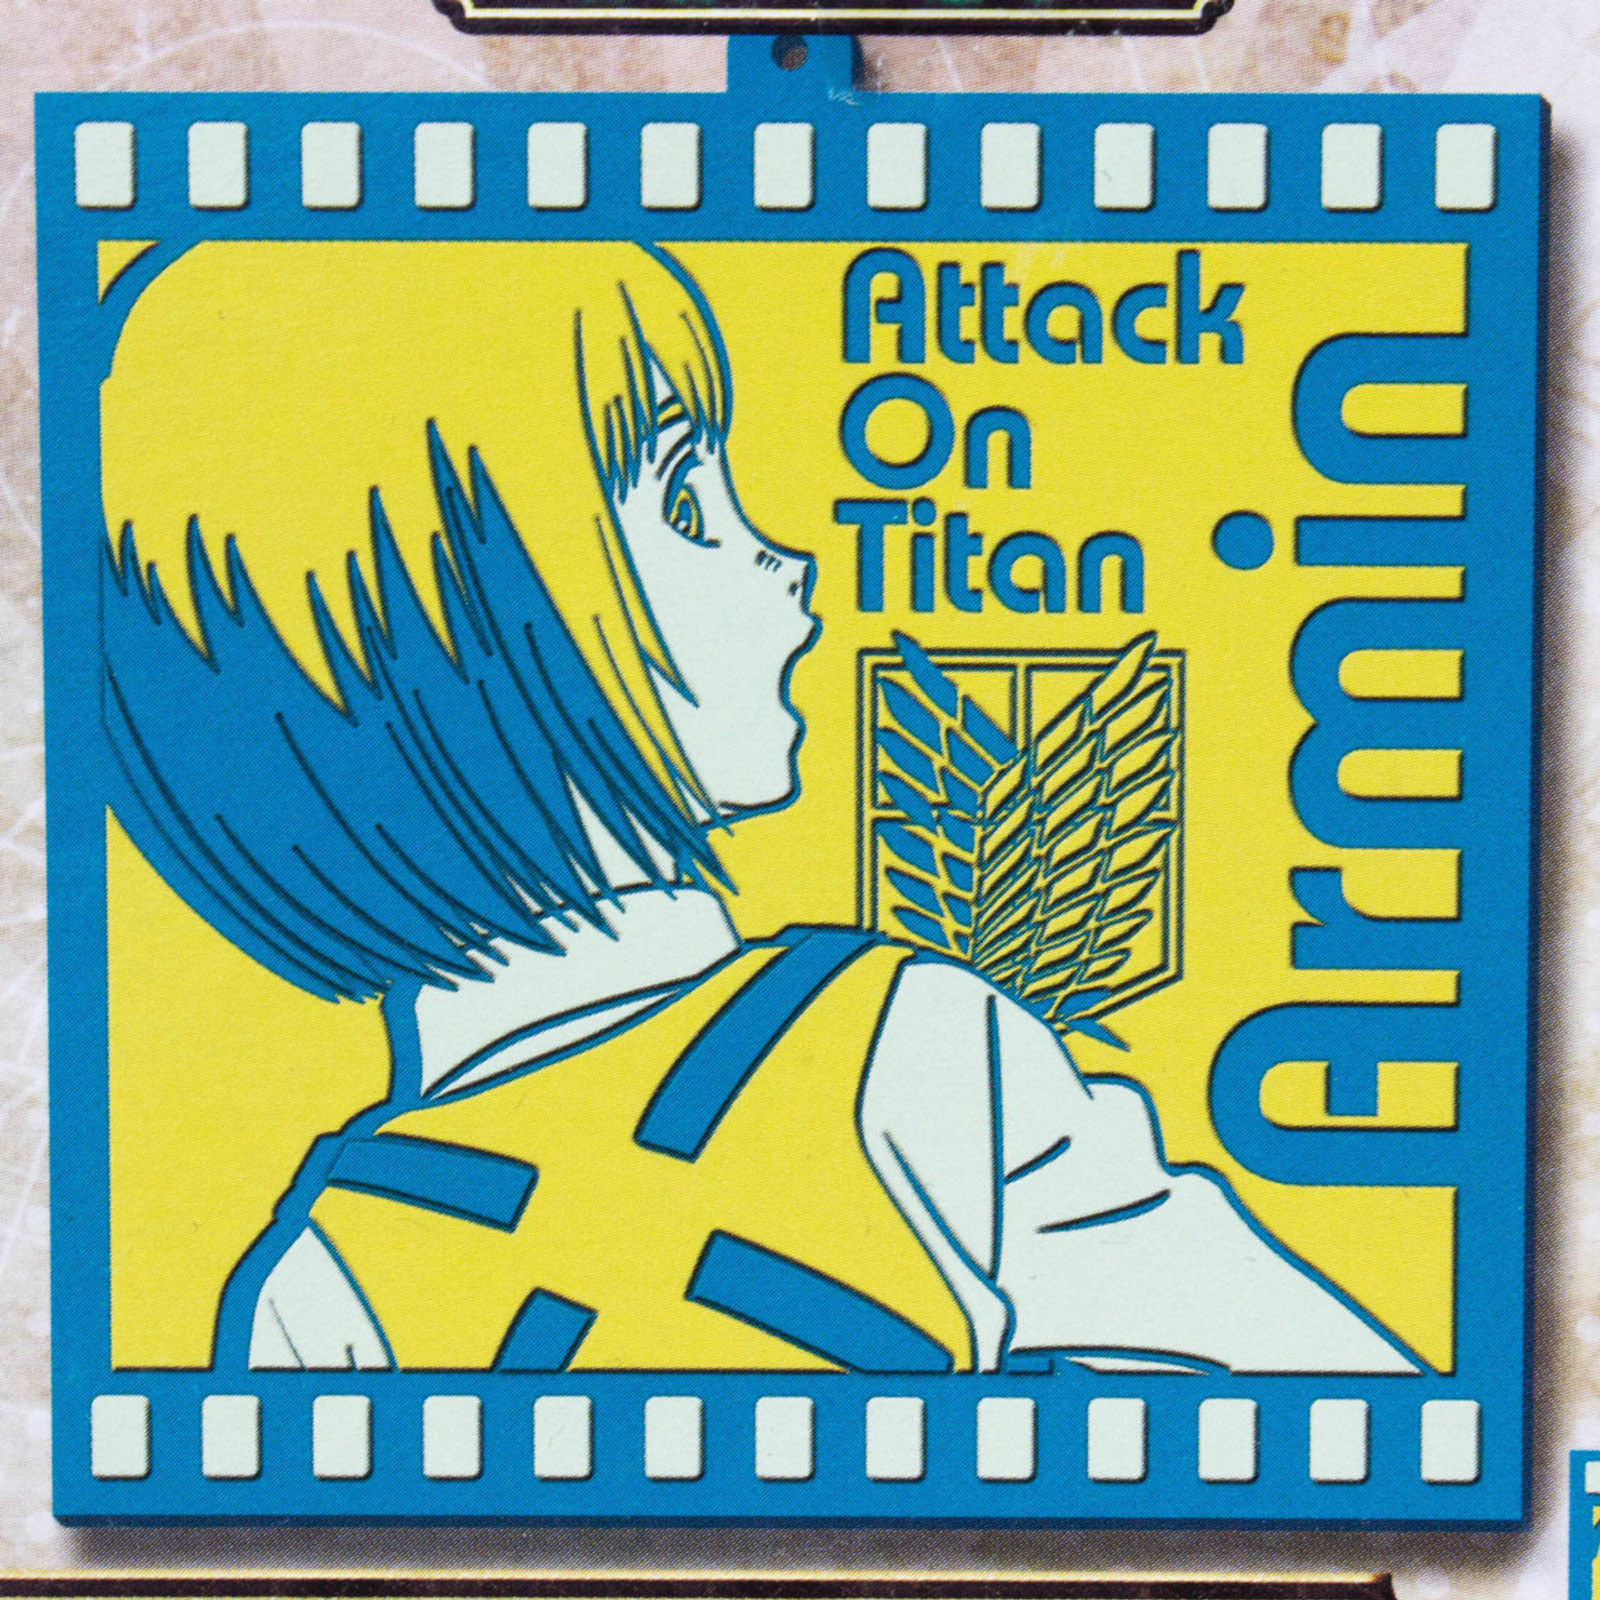 Attack on Titan Rubber Coaster Armin Arlert Banpresto JAPAN ANIME MANGA